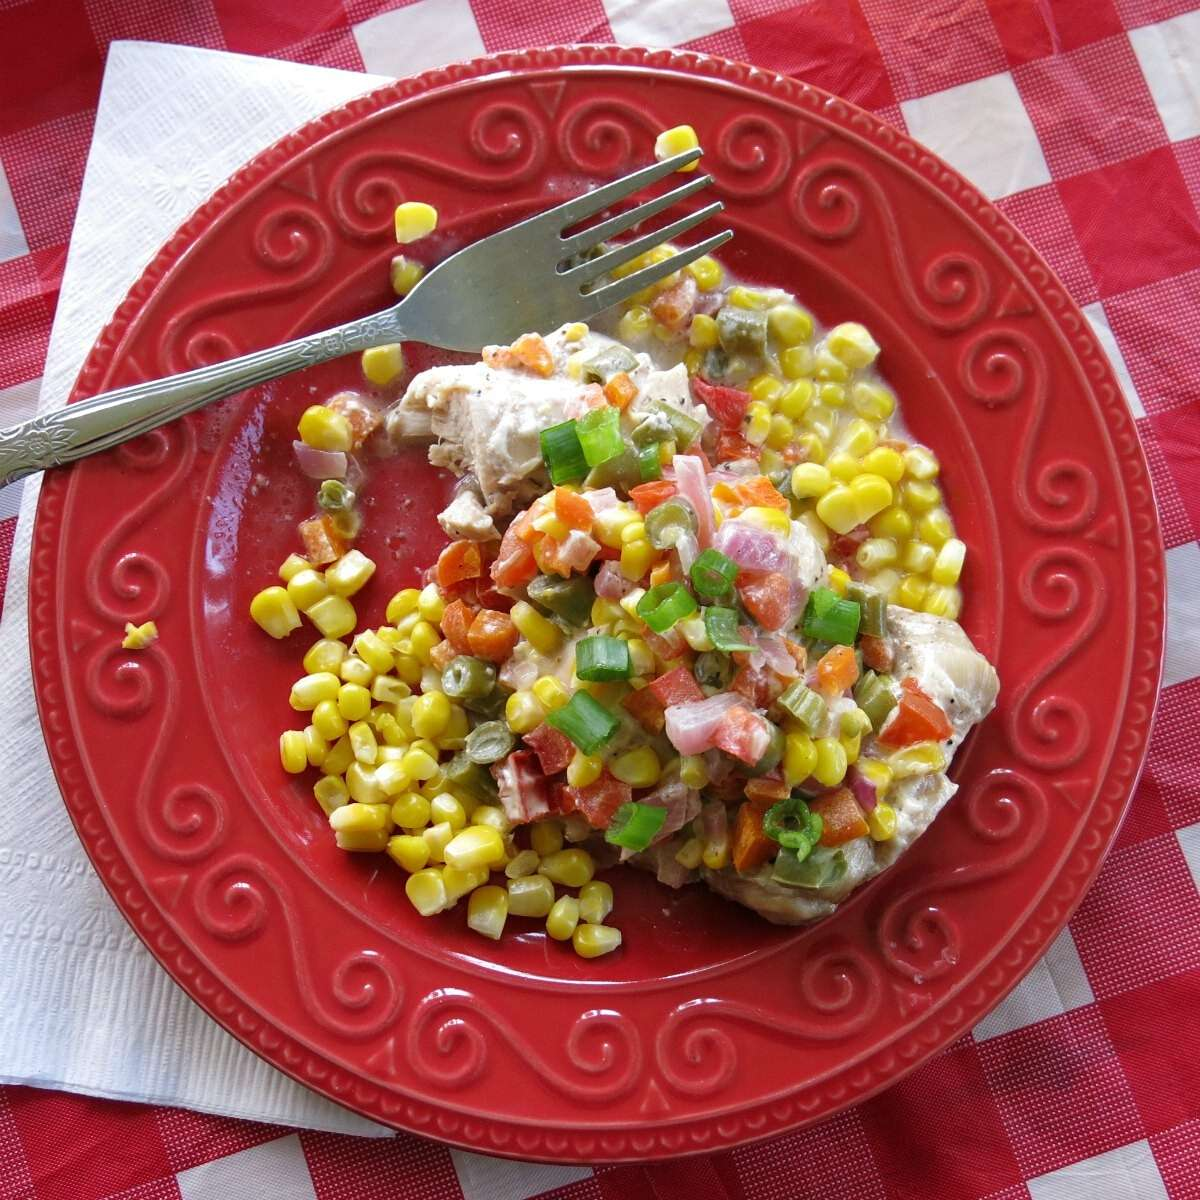 Ranch chicken topped with vegetables on a plate with a fork.